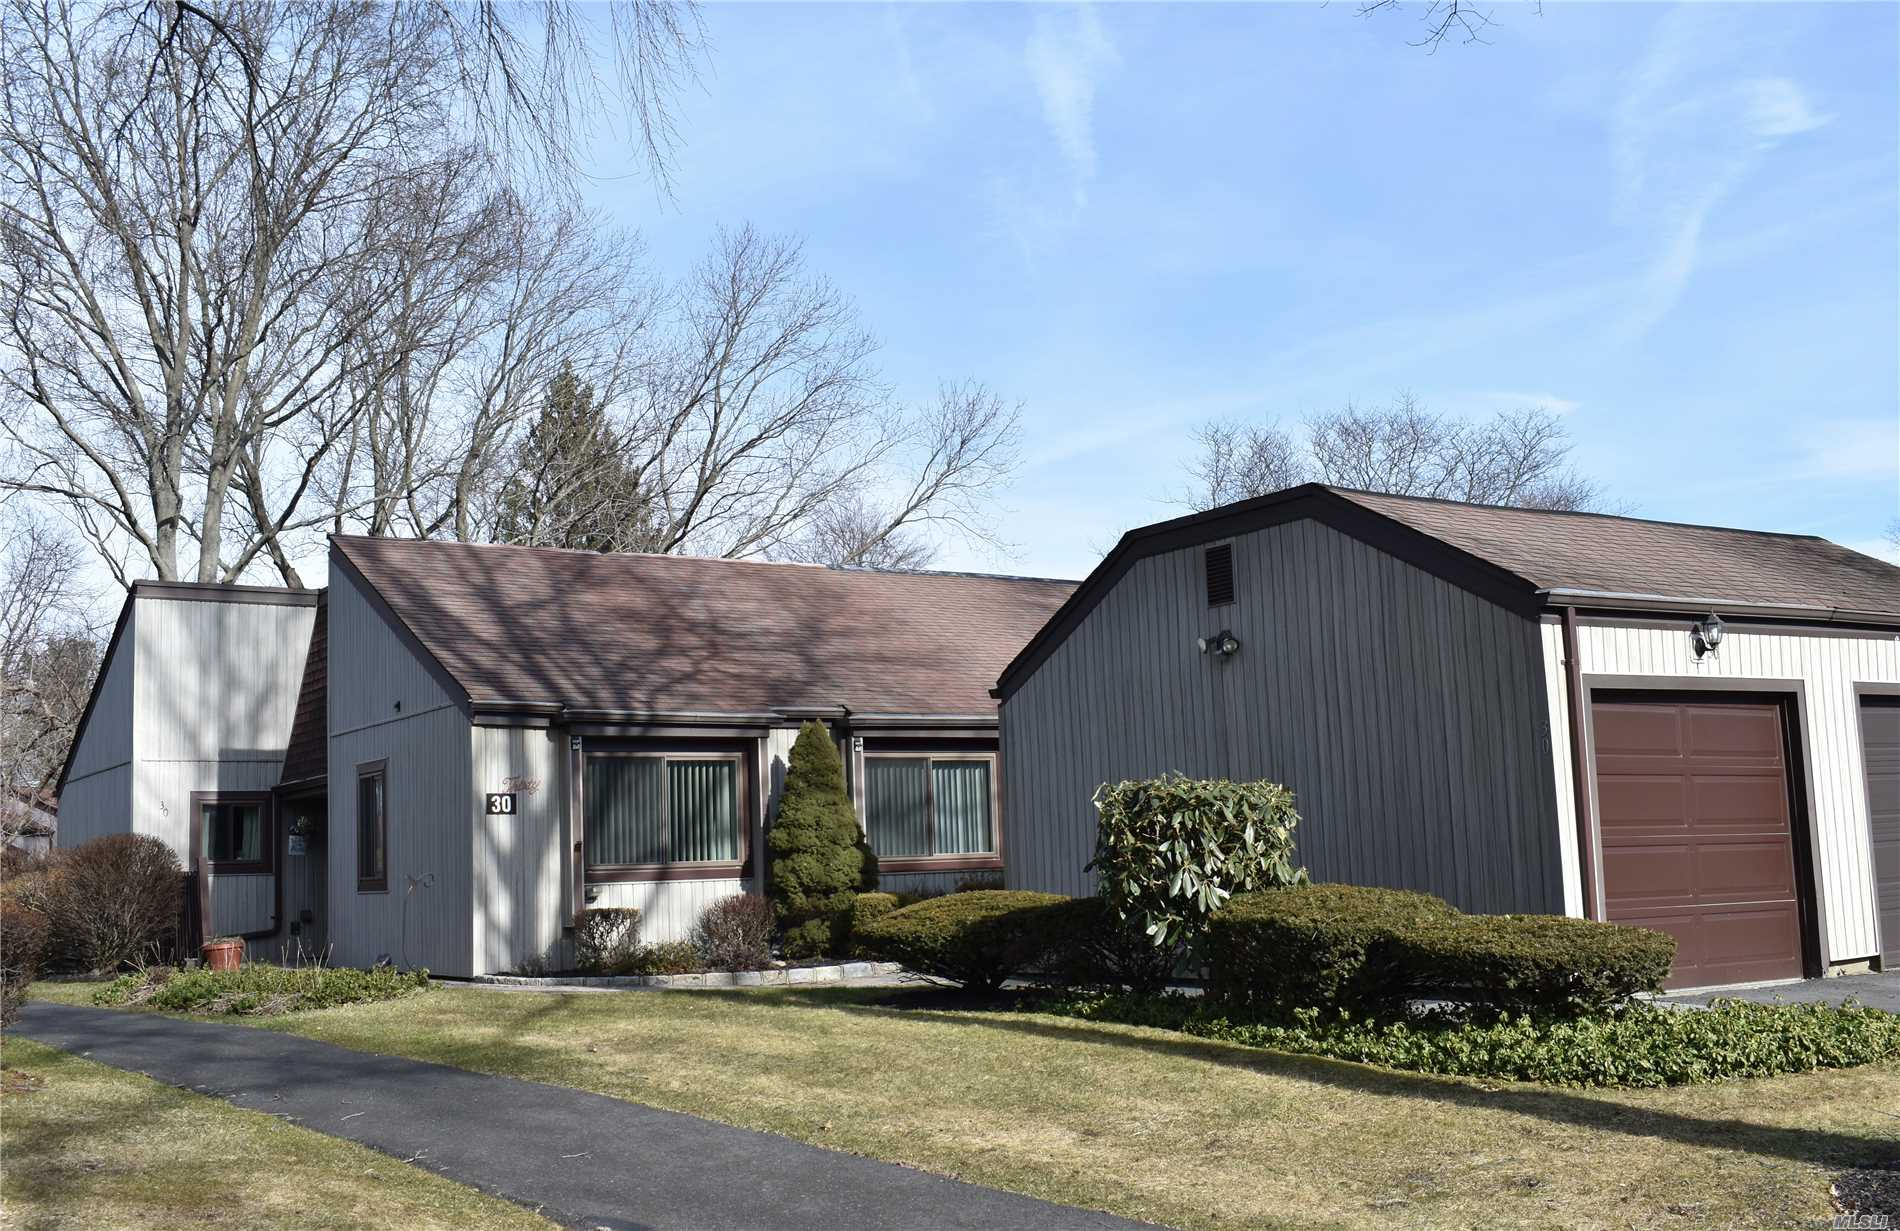 Lovely Spacious Coventry 2 Bdrm End Unit With Garage In Active 55+ Community, Vaulted Ceilings In Lr/Dr, Solar Tubes, Hi Hats In Bathrm, Updated Electric, Attic Insulated To Upgrade Energy Standards, Upgraded Windows In Bdrms And Kit And Newer Sliding Patio Door, Pet Friendly, Close To Shopping & Movies